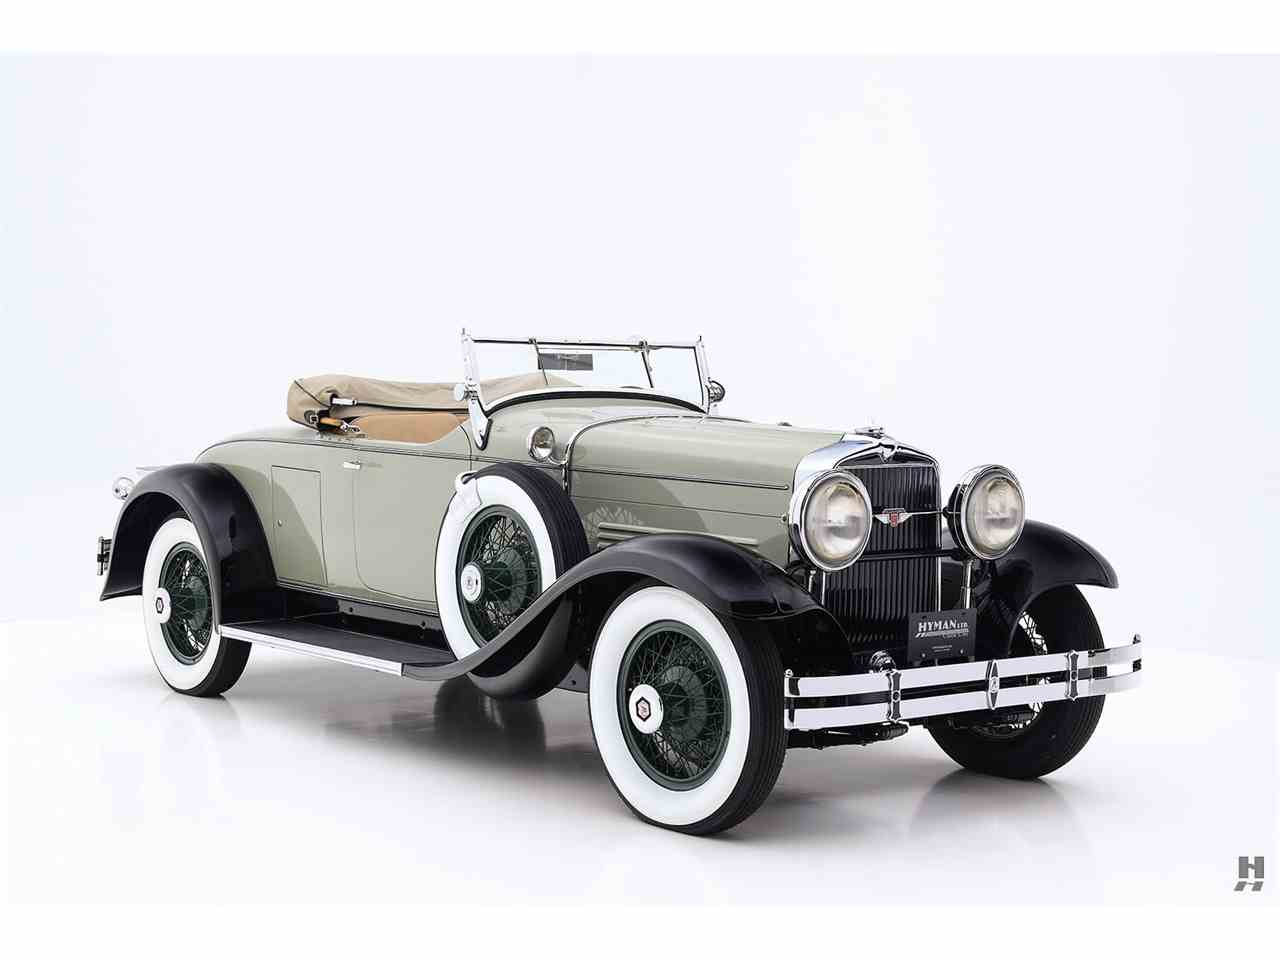 Large Picture of Classic 1929 Stutz Blackhawk - $137,500.00 Offered by Hyman Ltd. Classic Cars - JKFP